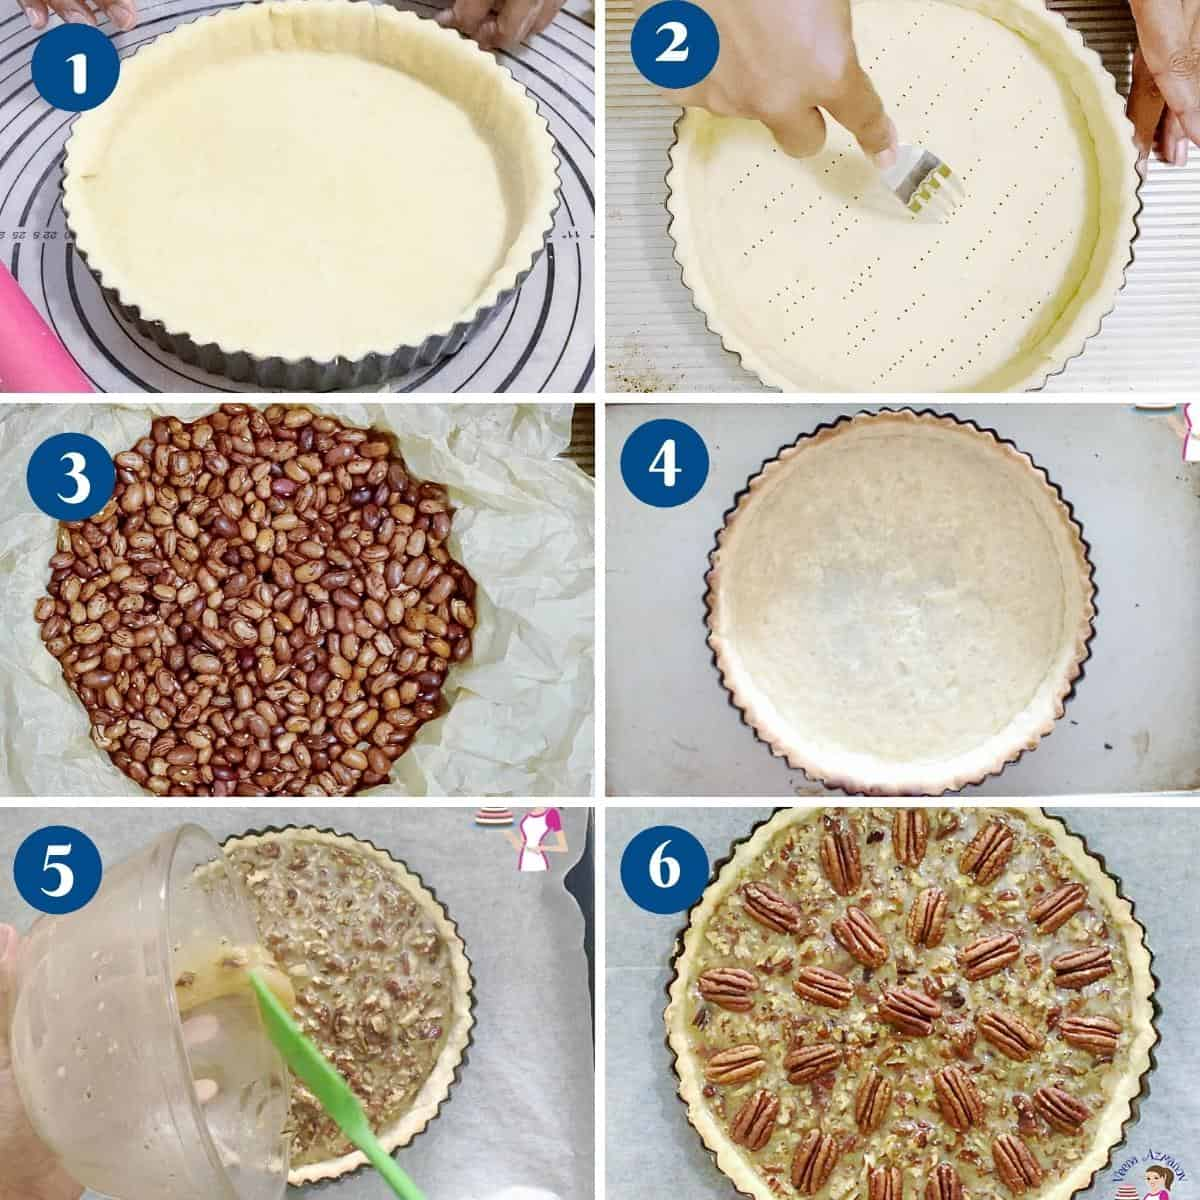 Progress pictures how to make a partially baked tart crust.